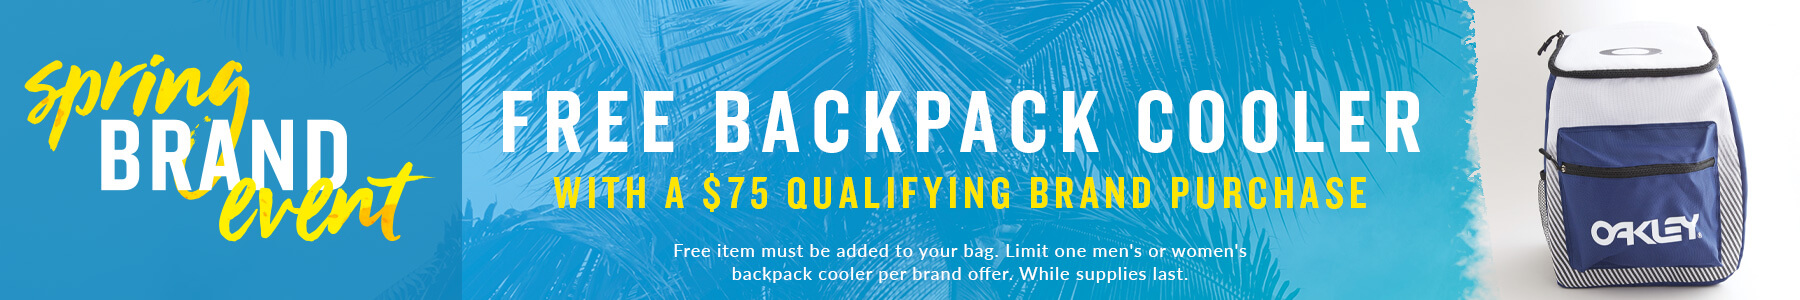 Spring Brand Event. Free Backpack Cooler with a $75 Qualifying Brand Purchase. Free item must be added to your bag. Limit one men's or women's backpack cooler per brand offer. While supplies last.